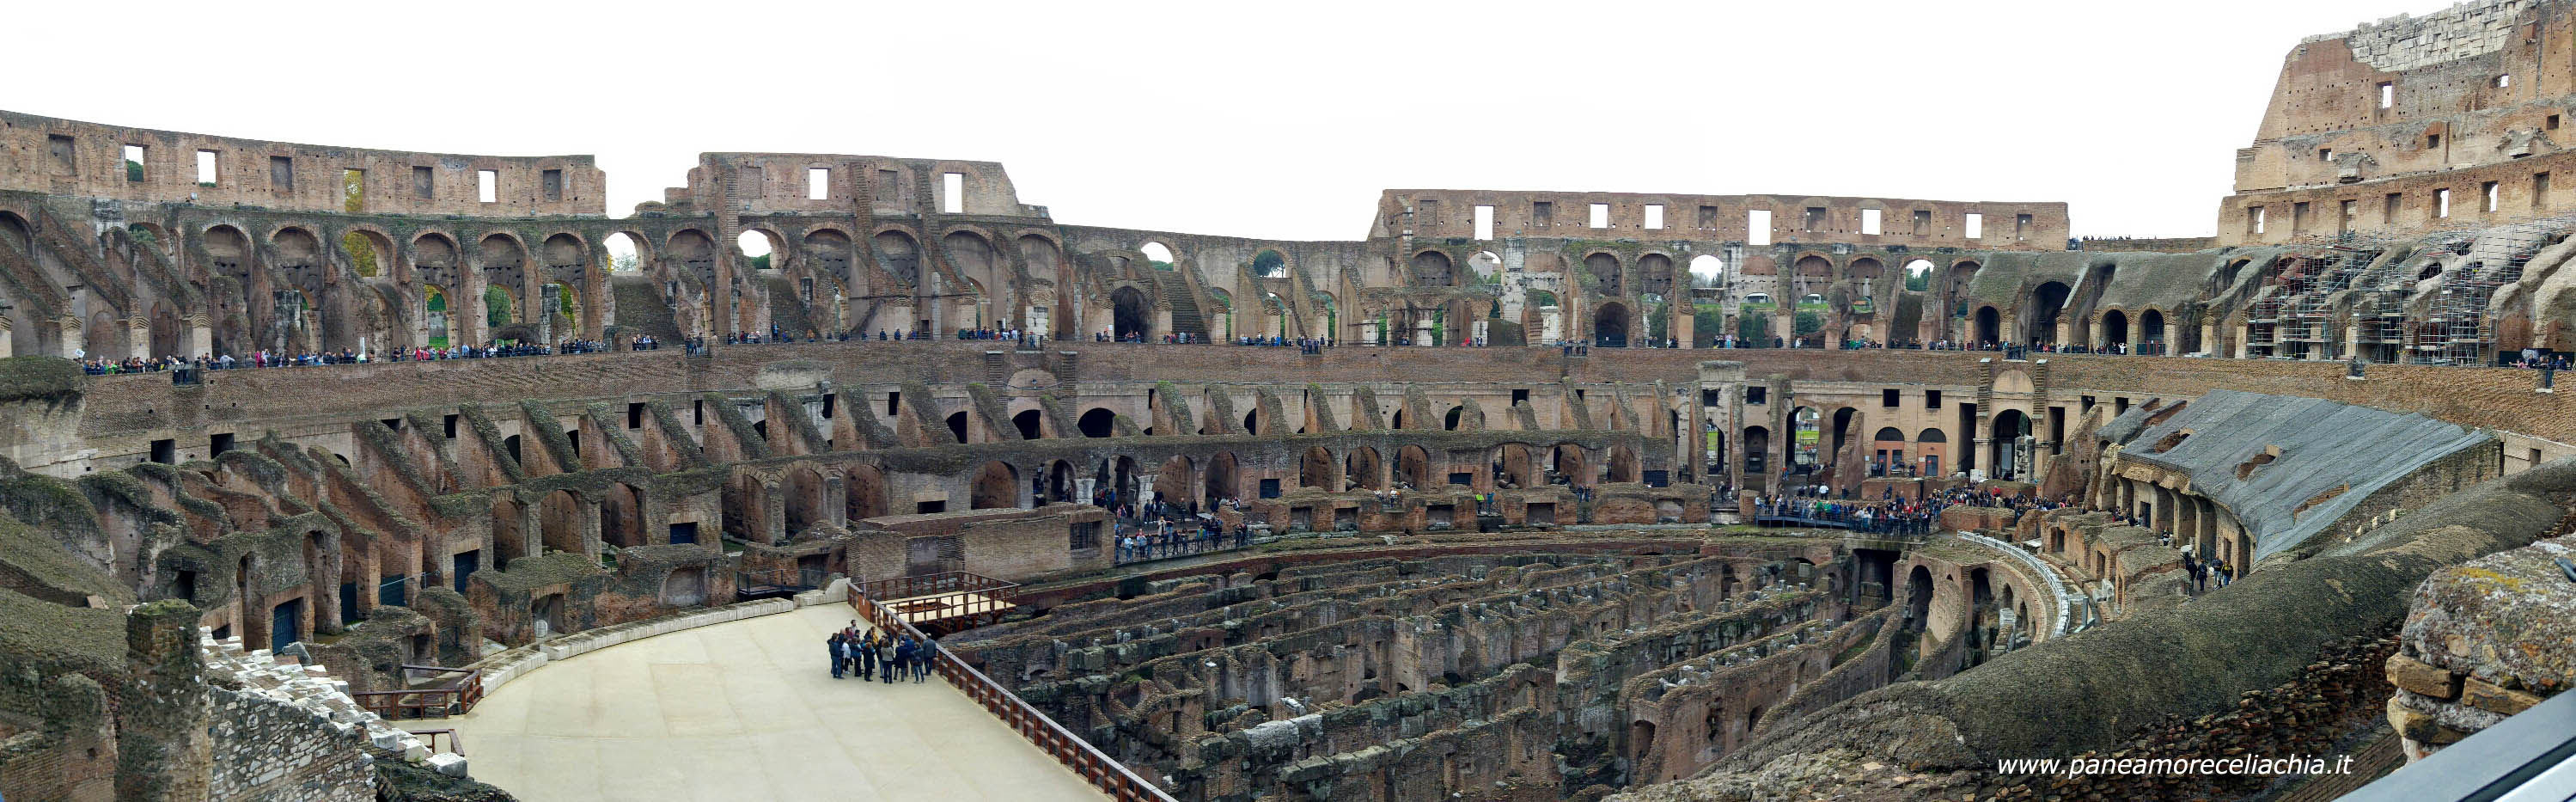 colosseo-interno